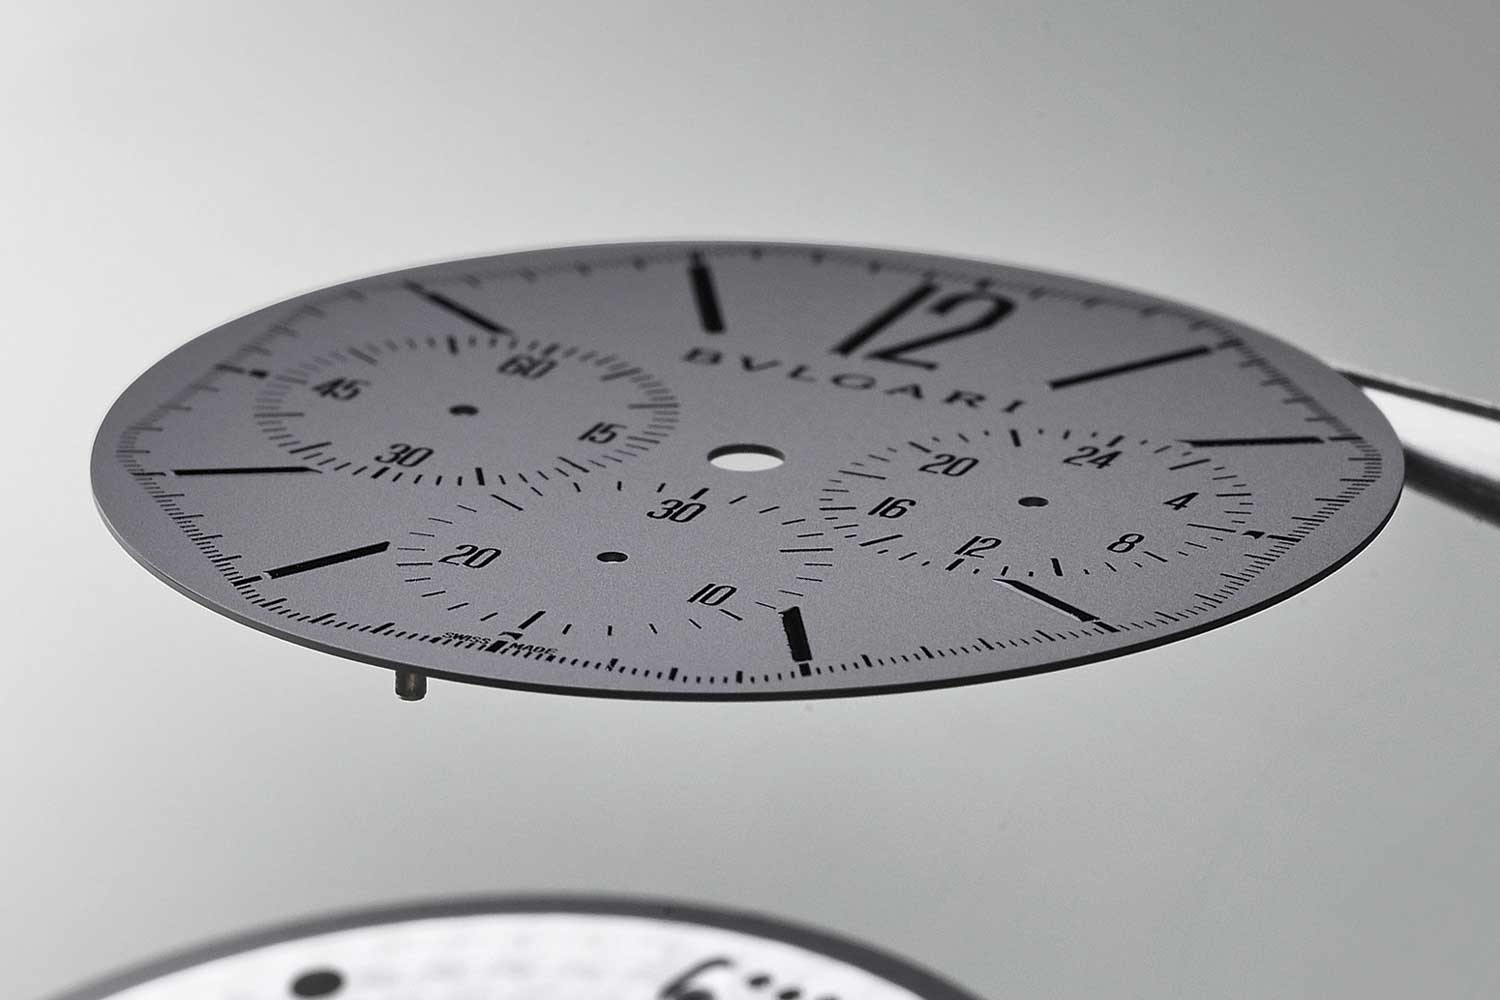 The dial of the regular version of the Bulgari Octo Finissimo Chronograph GMT is a mere 0.2mm thick the indexes